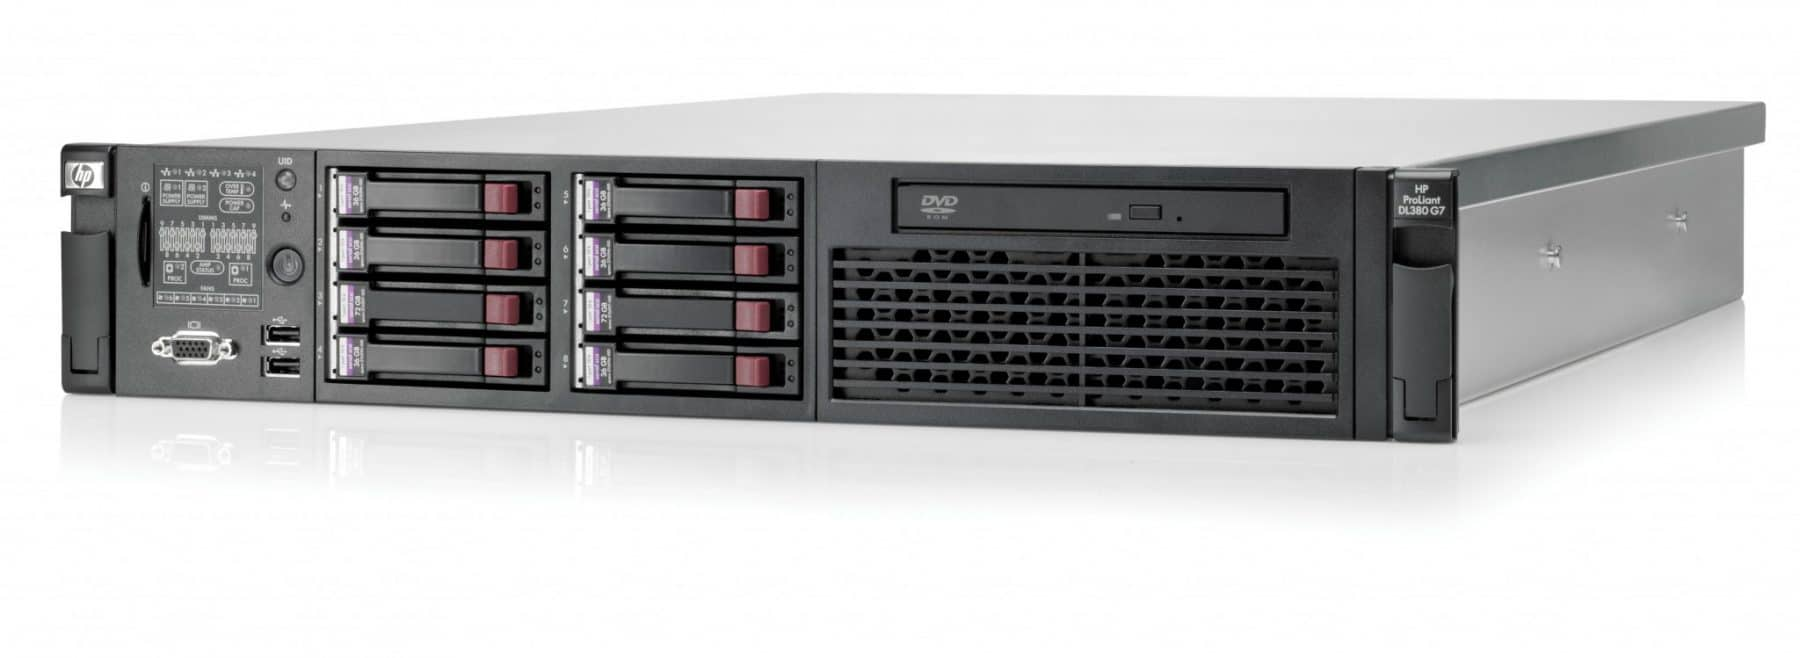 HP-Proliant-DL380-G7-Server-Front-View-2-1-2-2-3-1-3-1-1.jpe